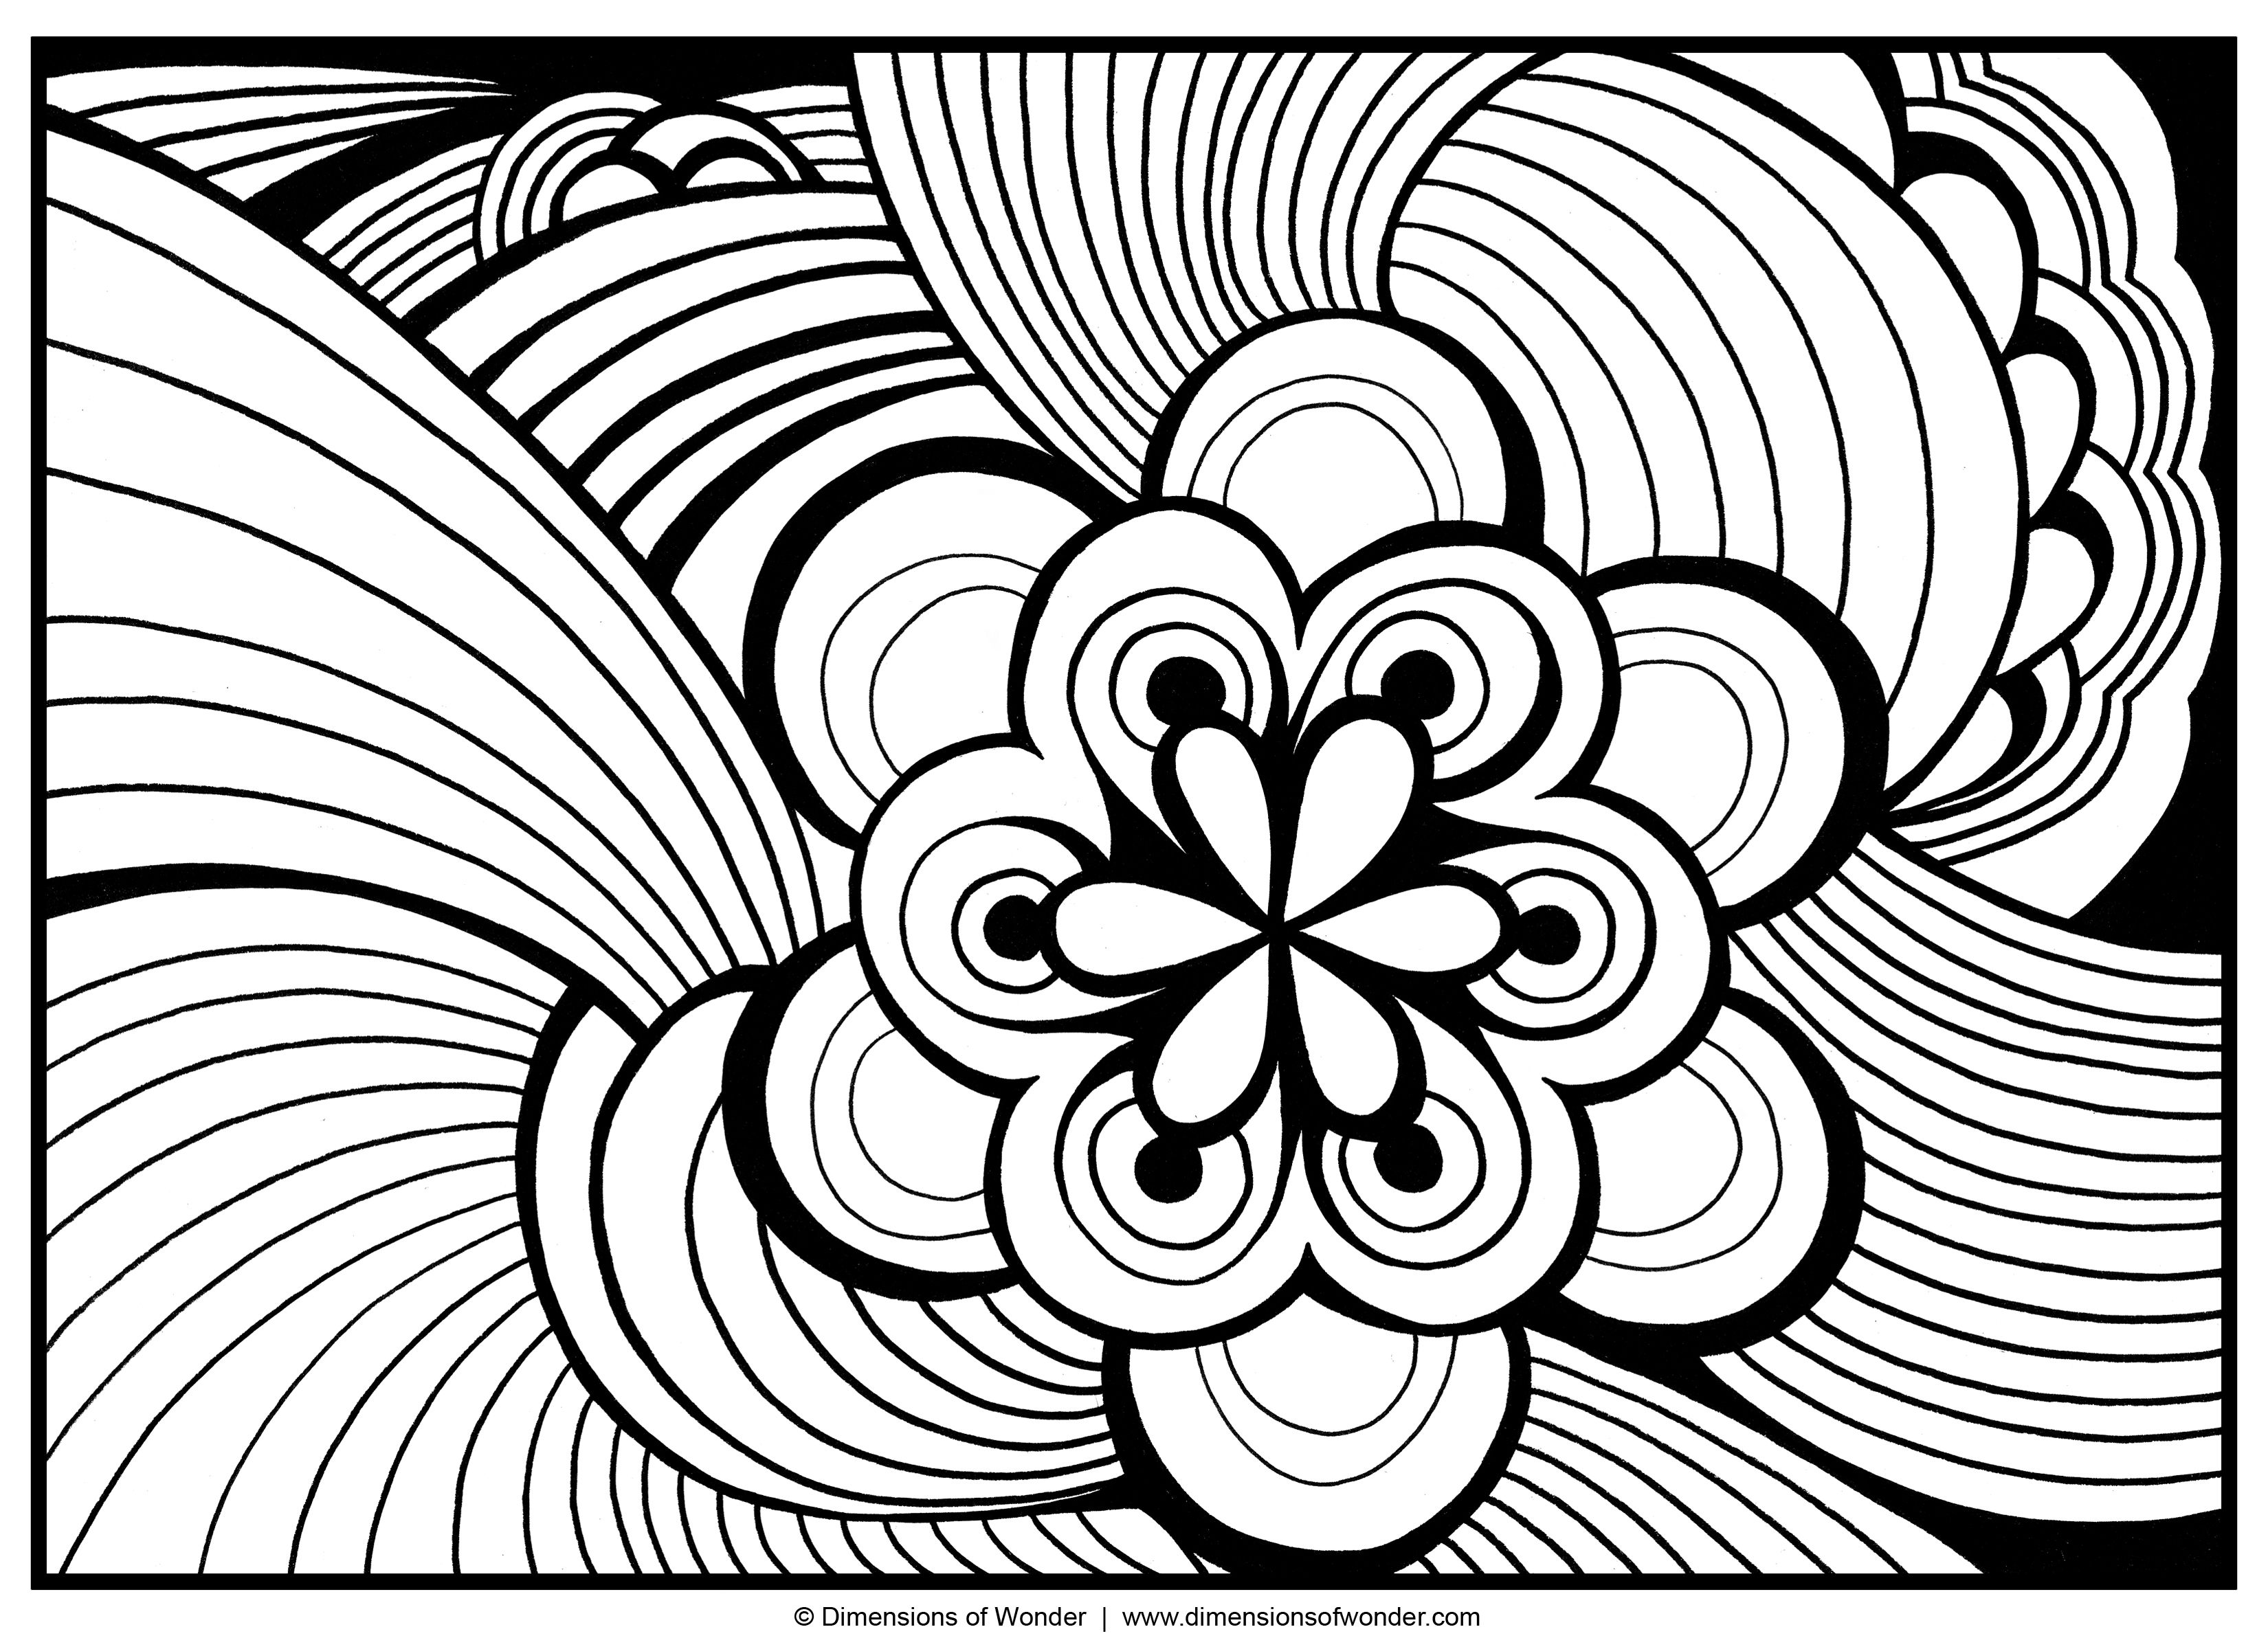 Abstract Coloring Pages Free Large Images Coloring Pinterest